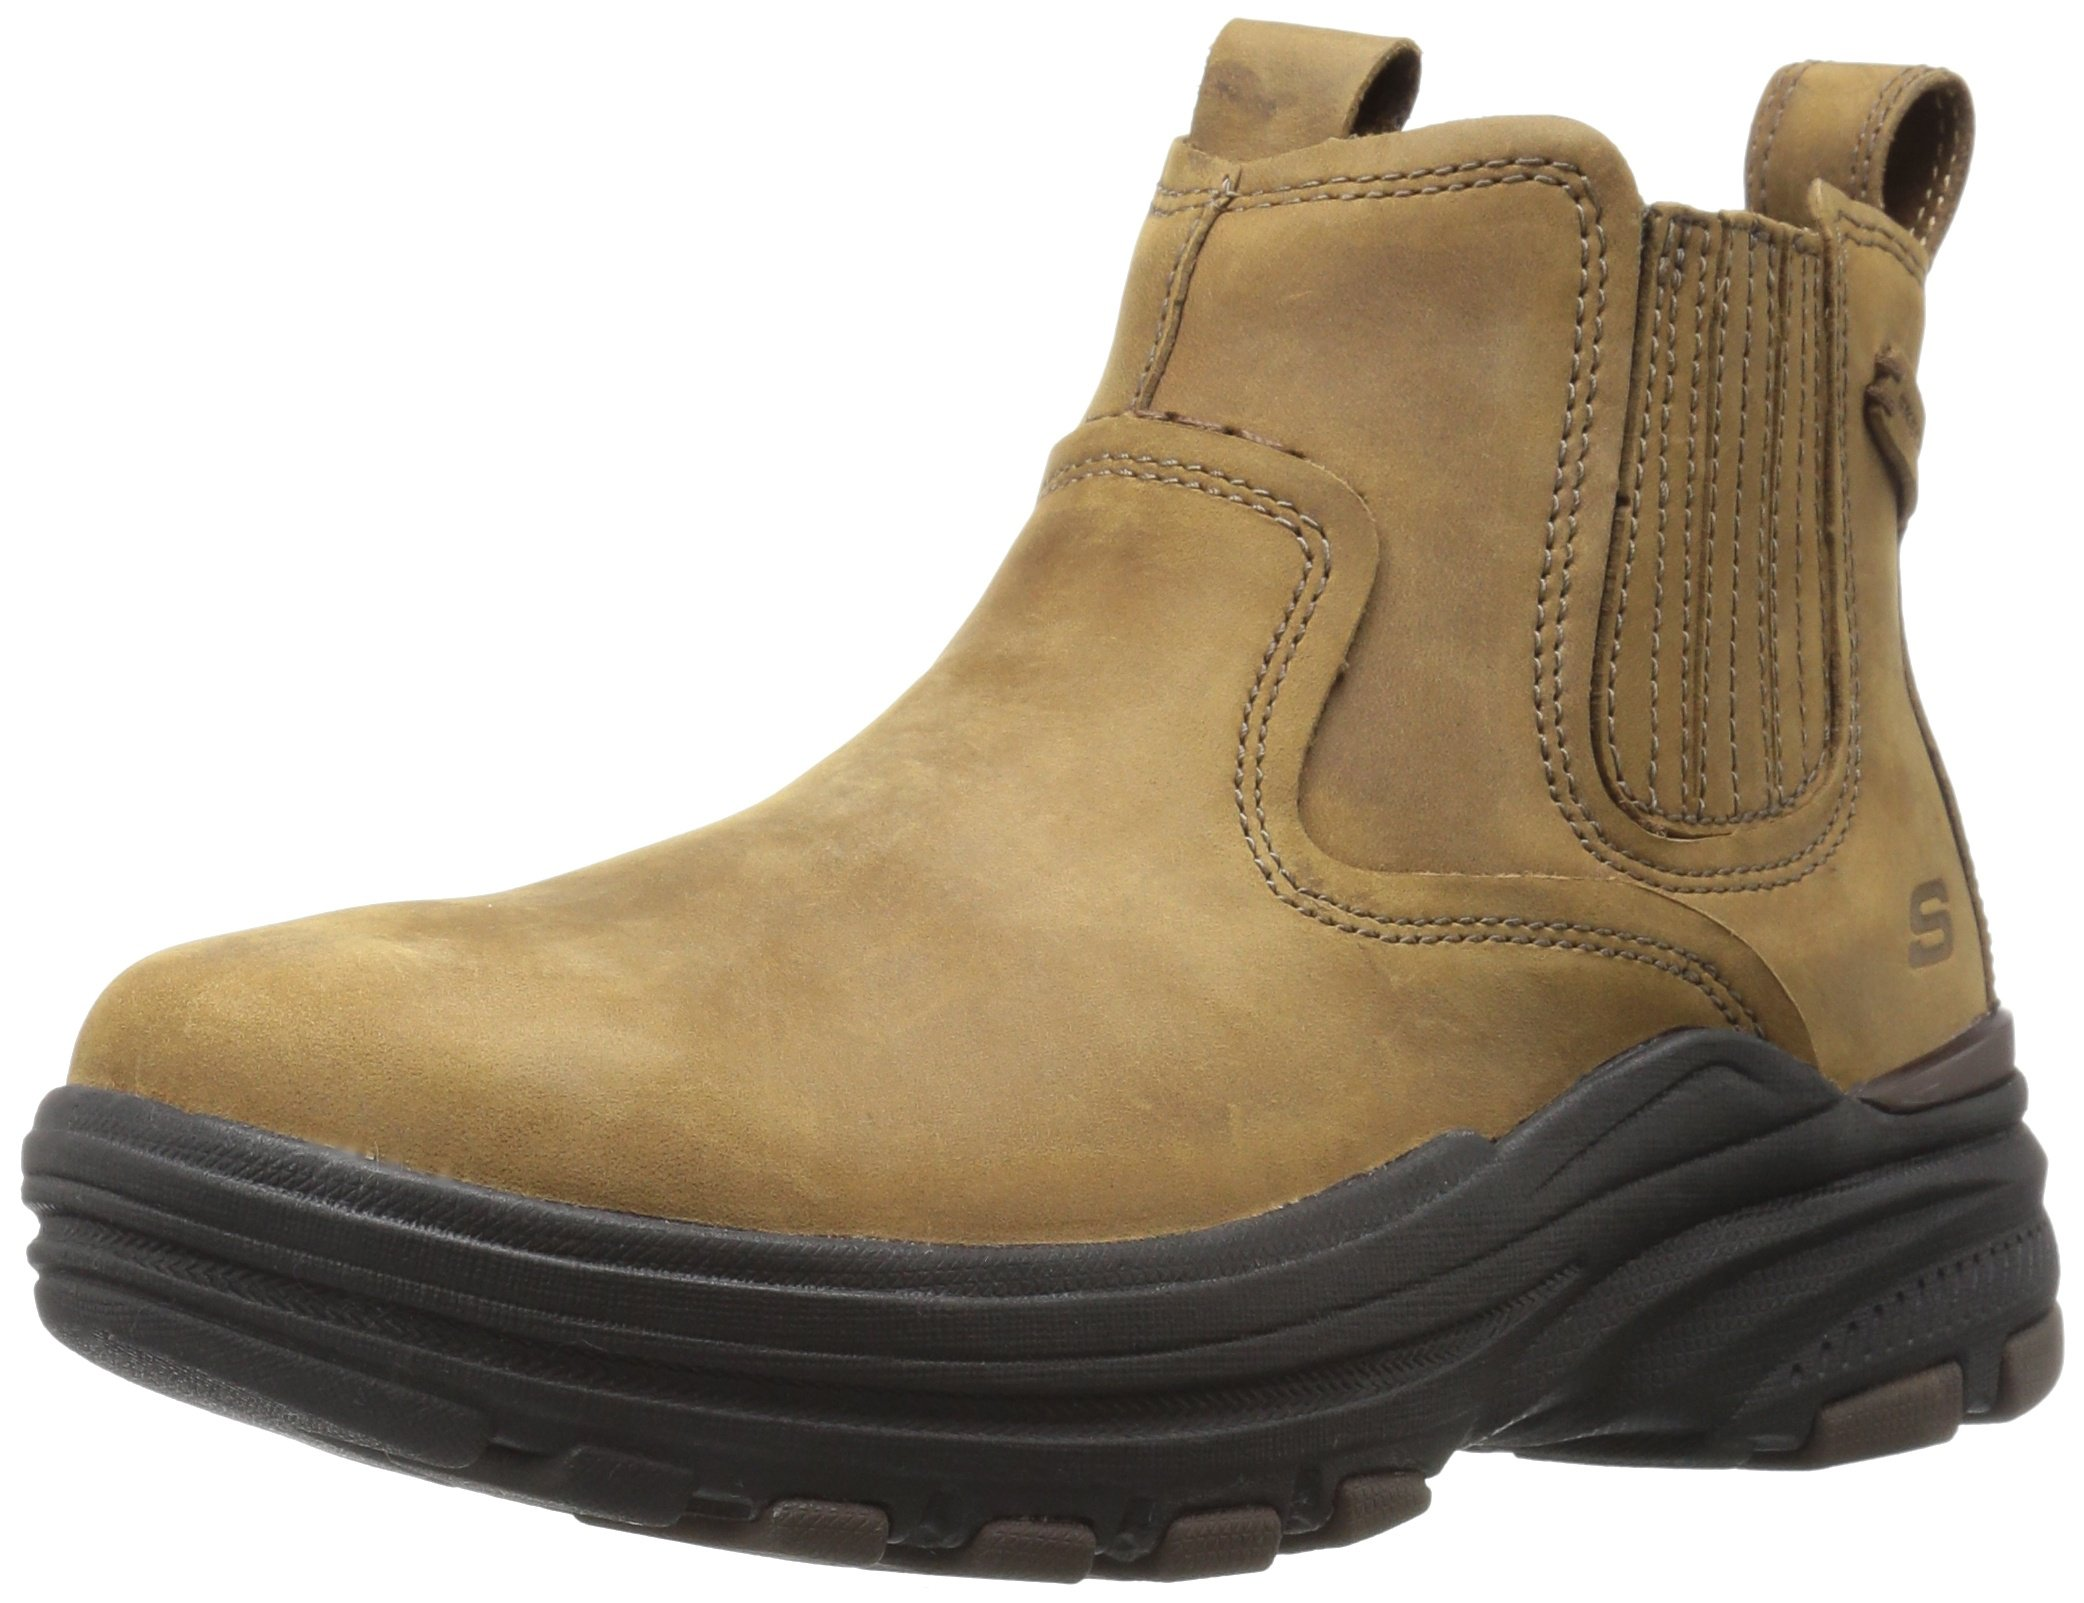 Skechers USA Men's Holdren Volsent Chukka Boot,Light Brown,6.5 M US by Skechers